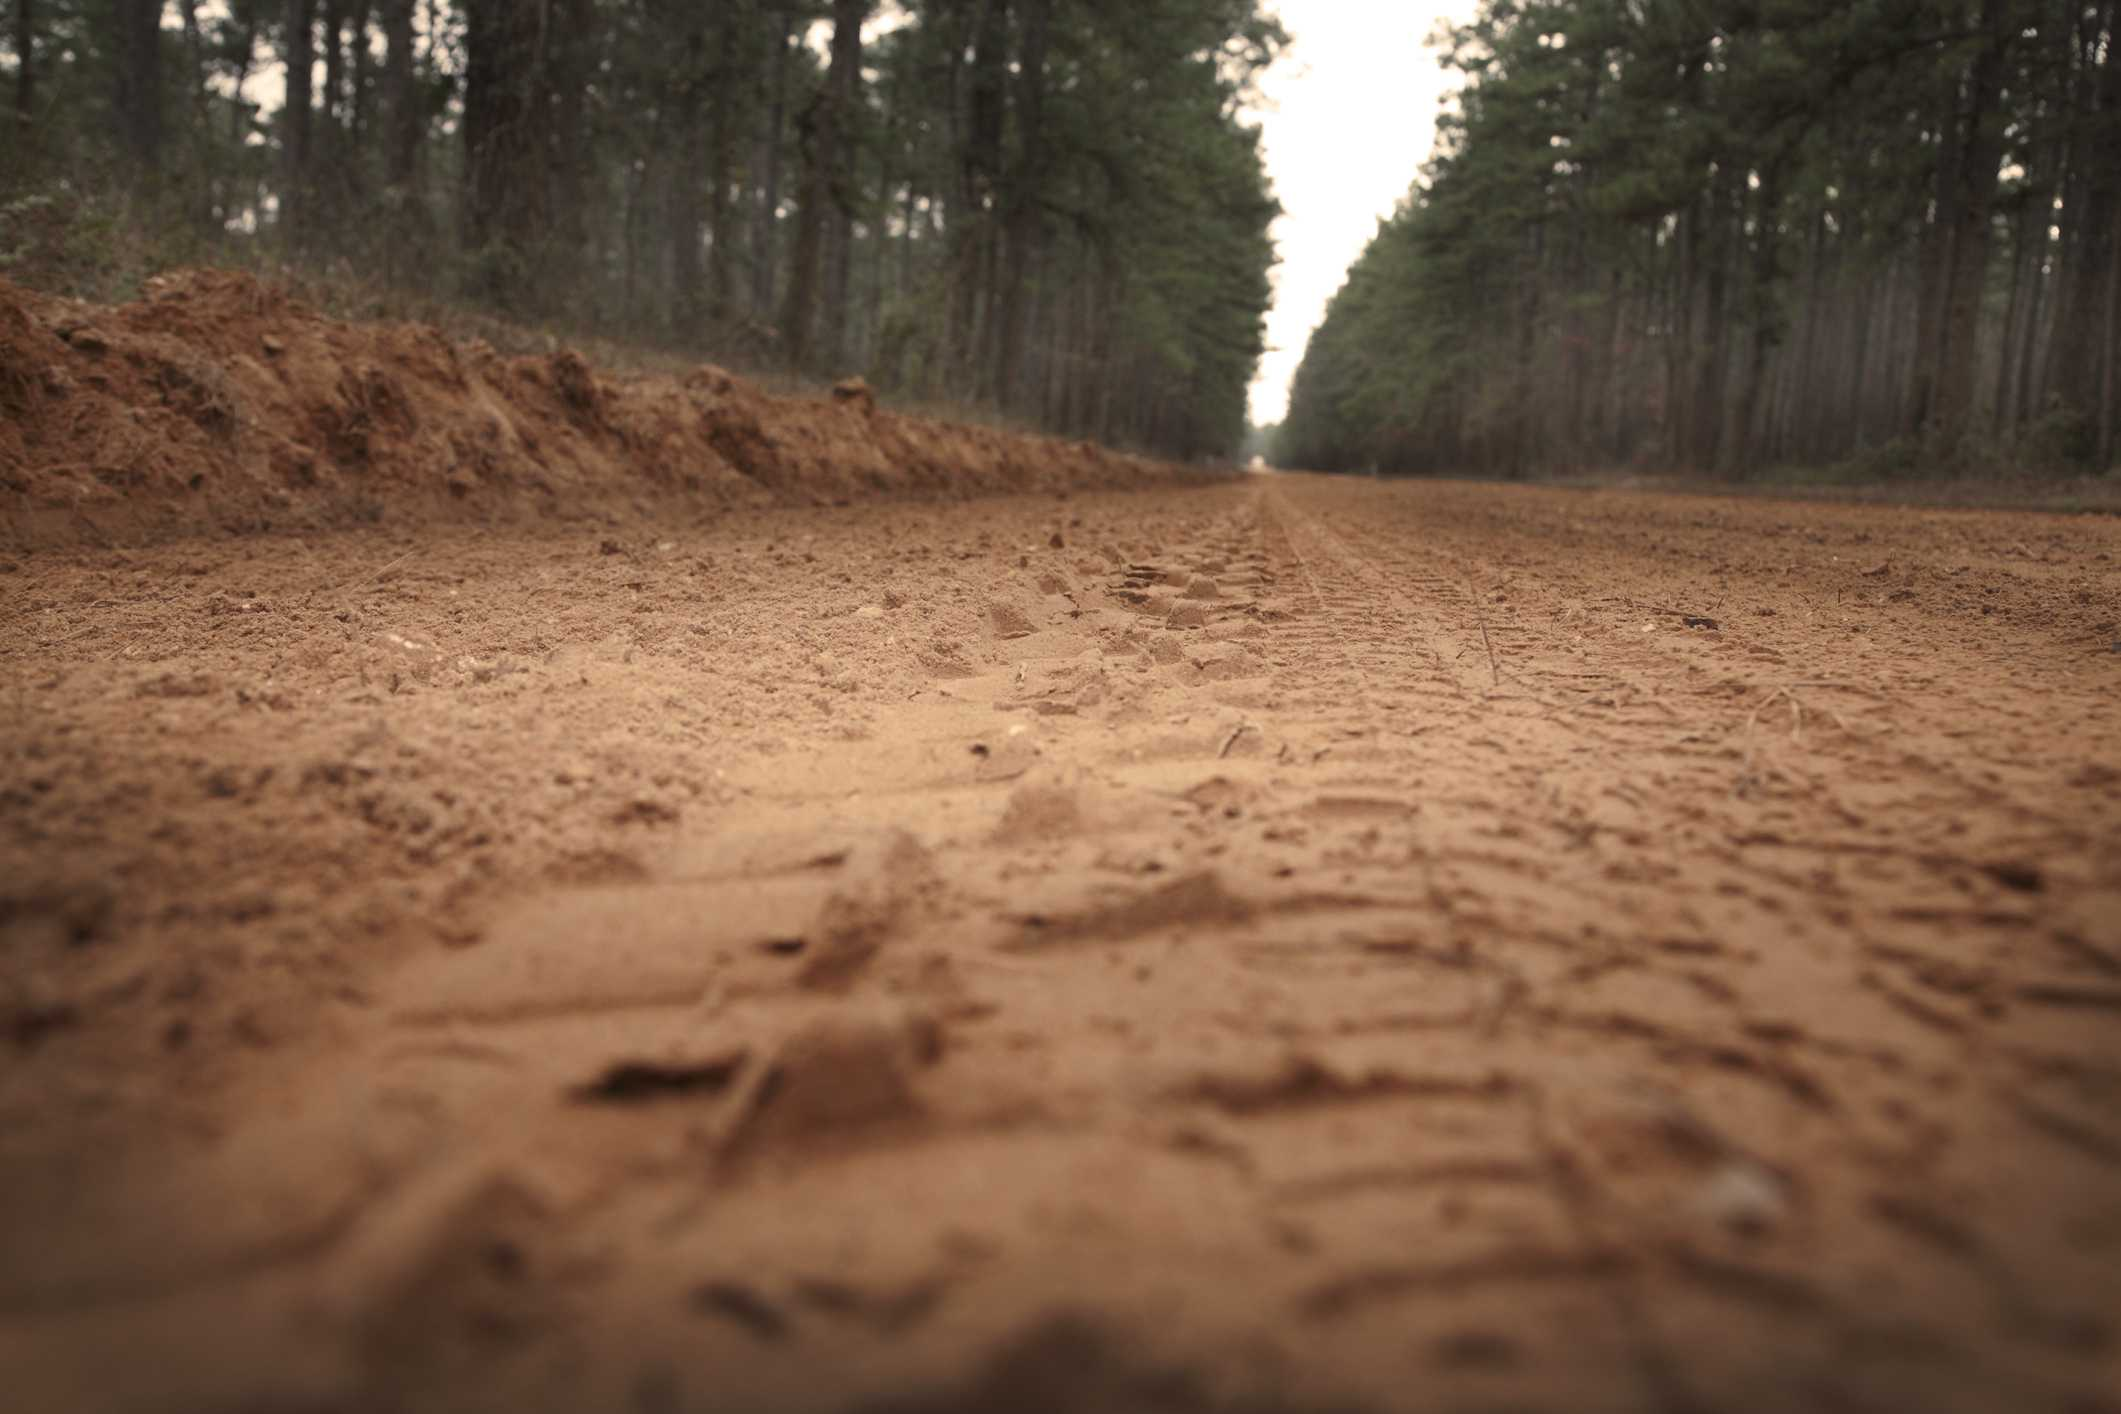 Close-up of dirt road, Sam Houston National Forest, Texas, USA